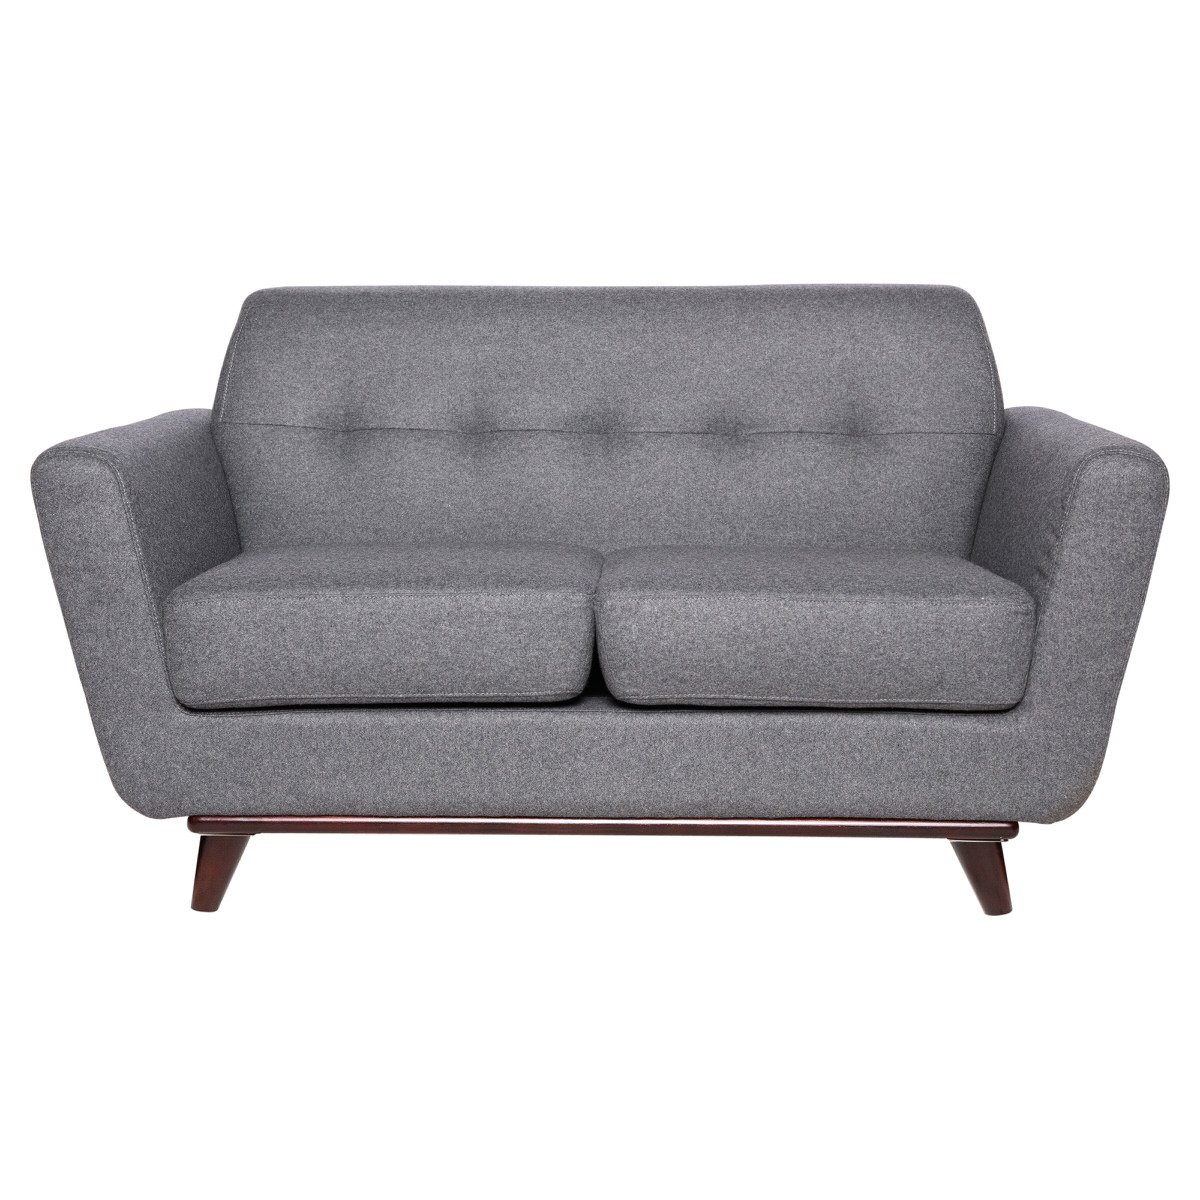 Fine Luray Modern Tufted Loveseat With Cherry Oak Base In Light Gray By Leisuremod Gmtry Best Dining Table And Chair Ideas Images Gmtryco